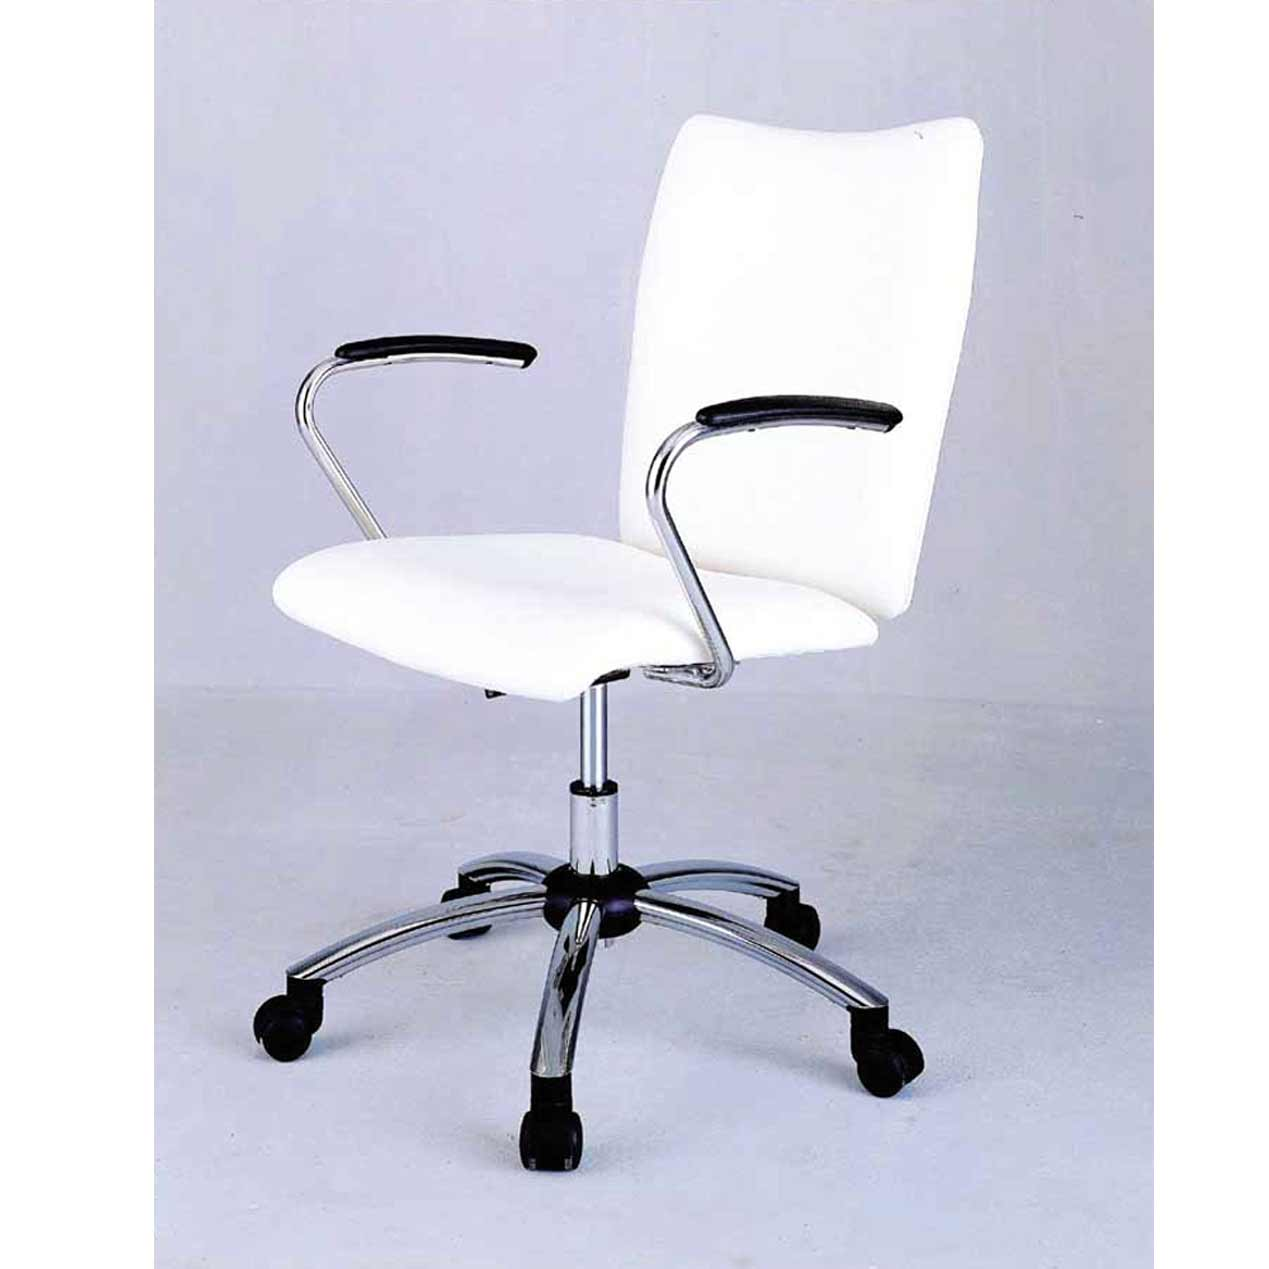 Desk Chair Benefits Office Furniture A Rolling Desk Chair Has An